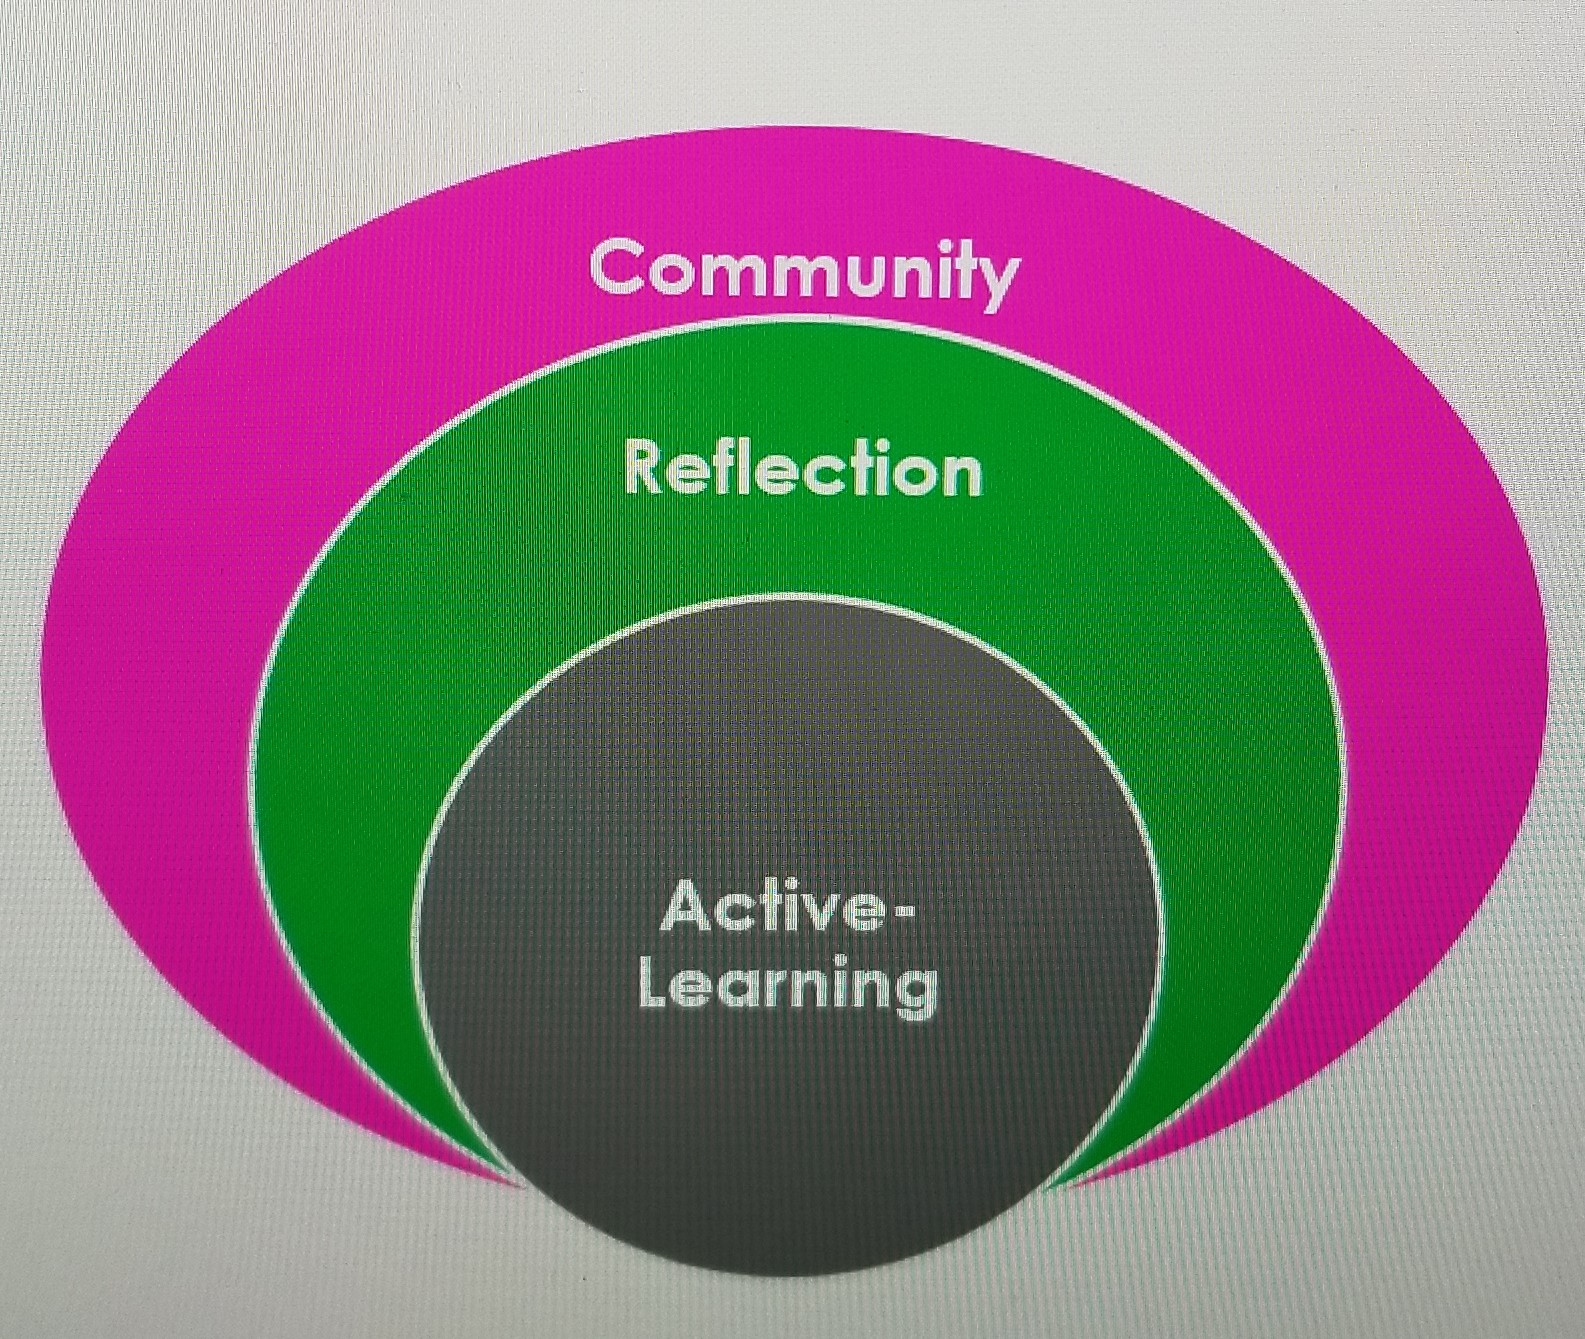 Yogibana was built in alignment with the core teaching values of active-learning, reflection, and community.